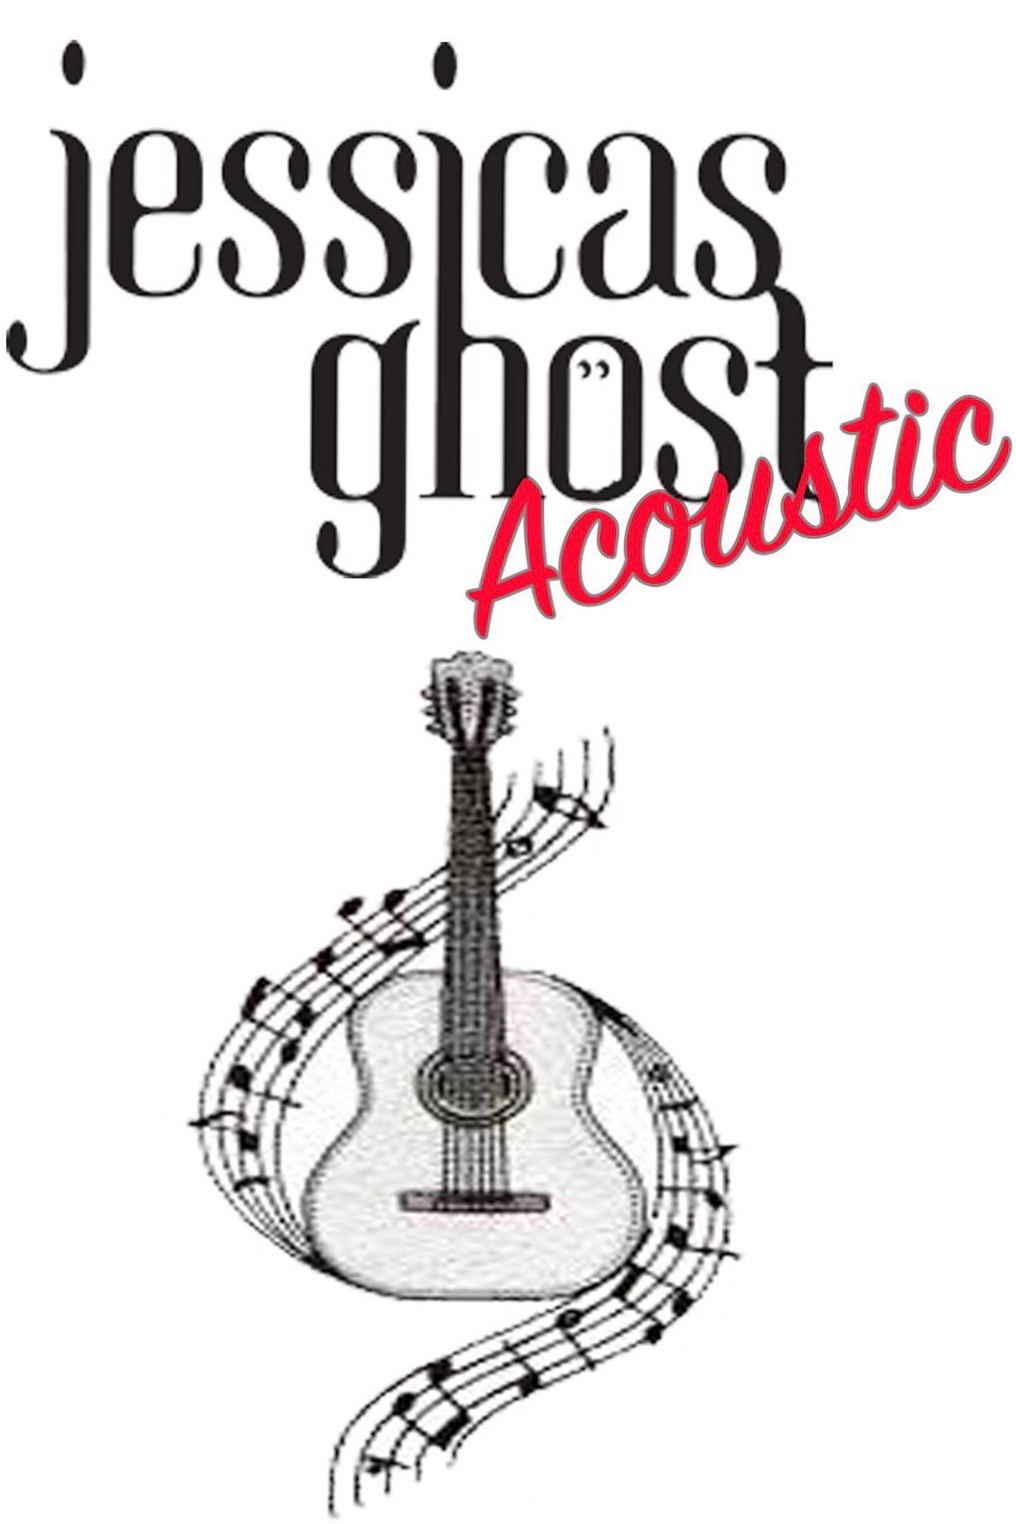 Jessicas Ghostacoustic covers duo & trio for pubs and functions in Merseyside